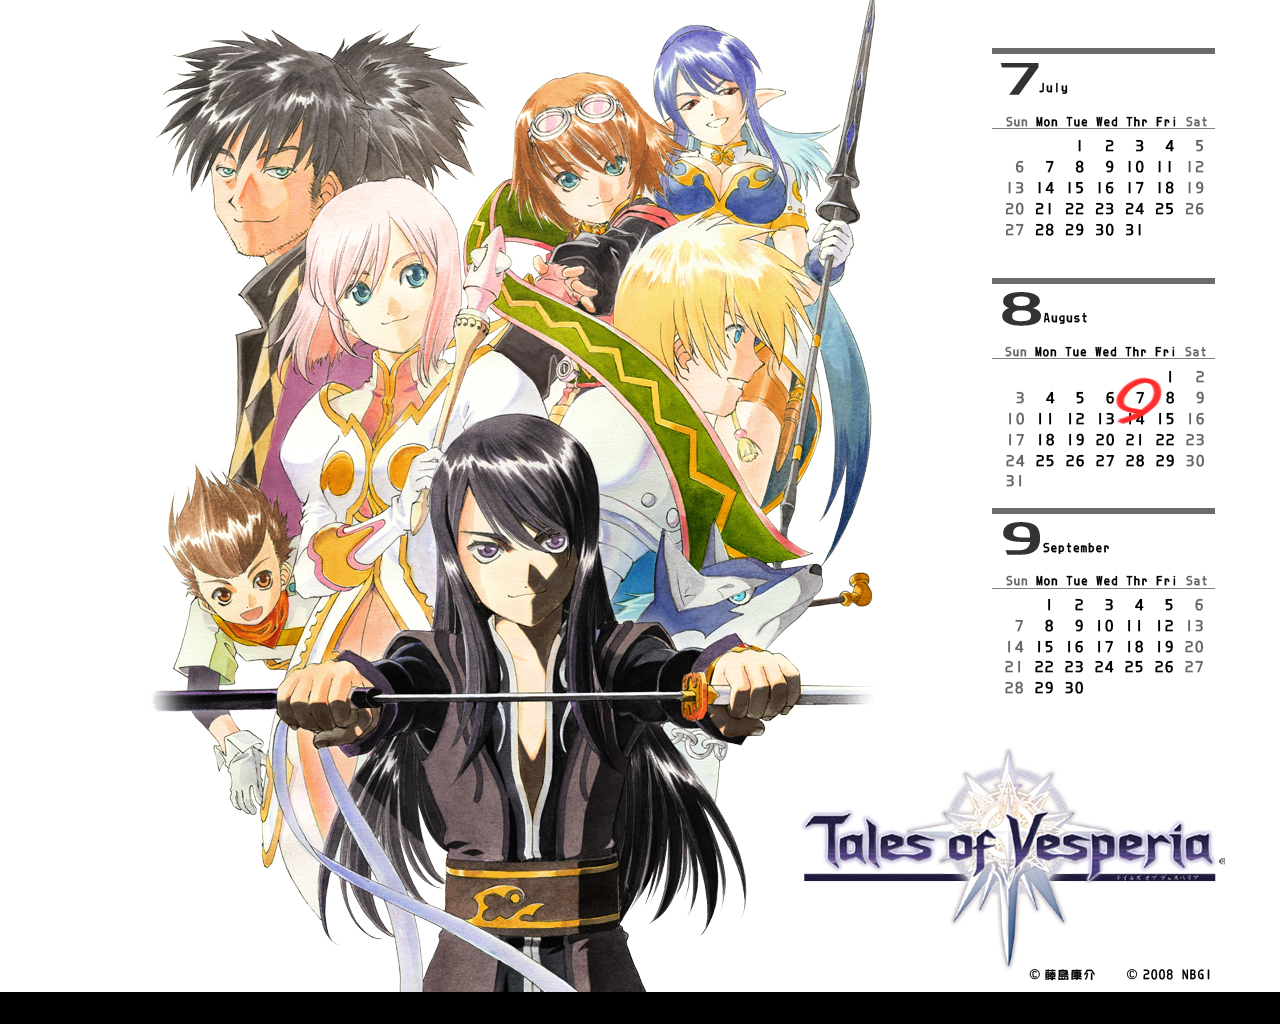 Tales of Vesperia Fiche RPG reviews previews wallpapers videos 1280x1024